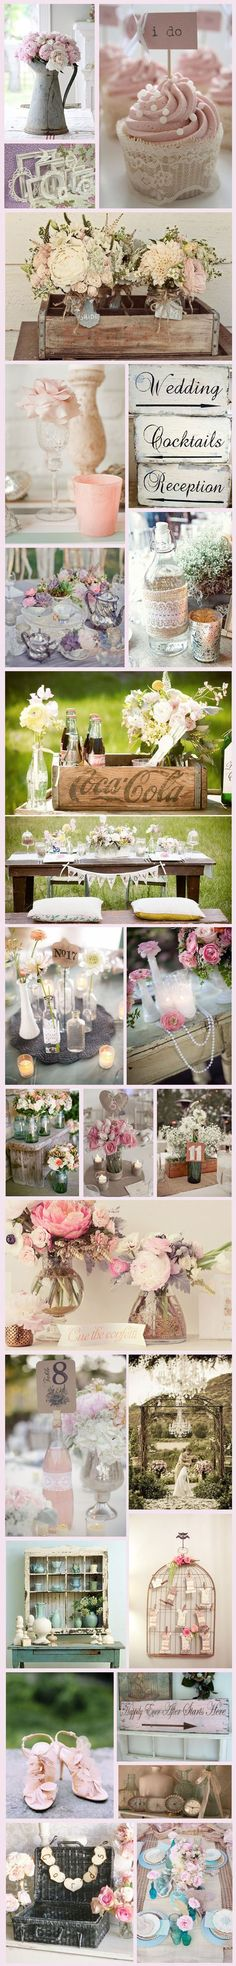 great inspiration for wedding decoration #hochzeit #inspiration #dekoration